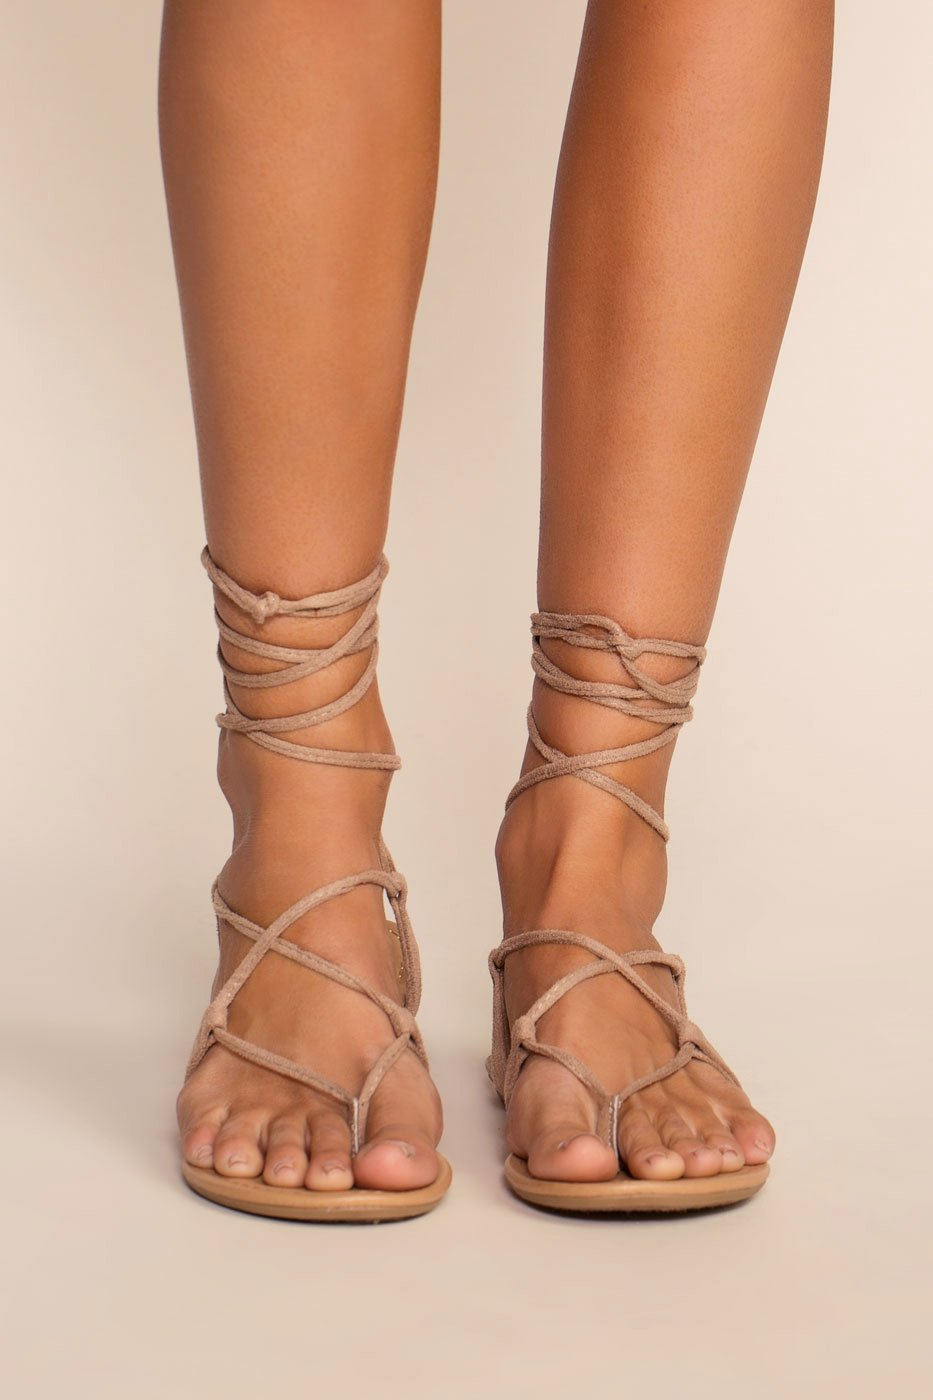 Shoes - Jeanie Sandals